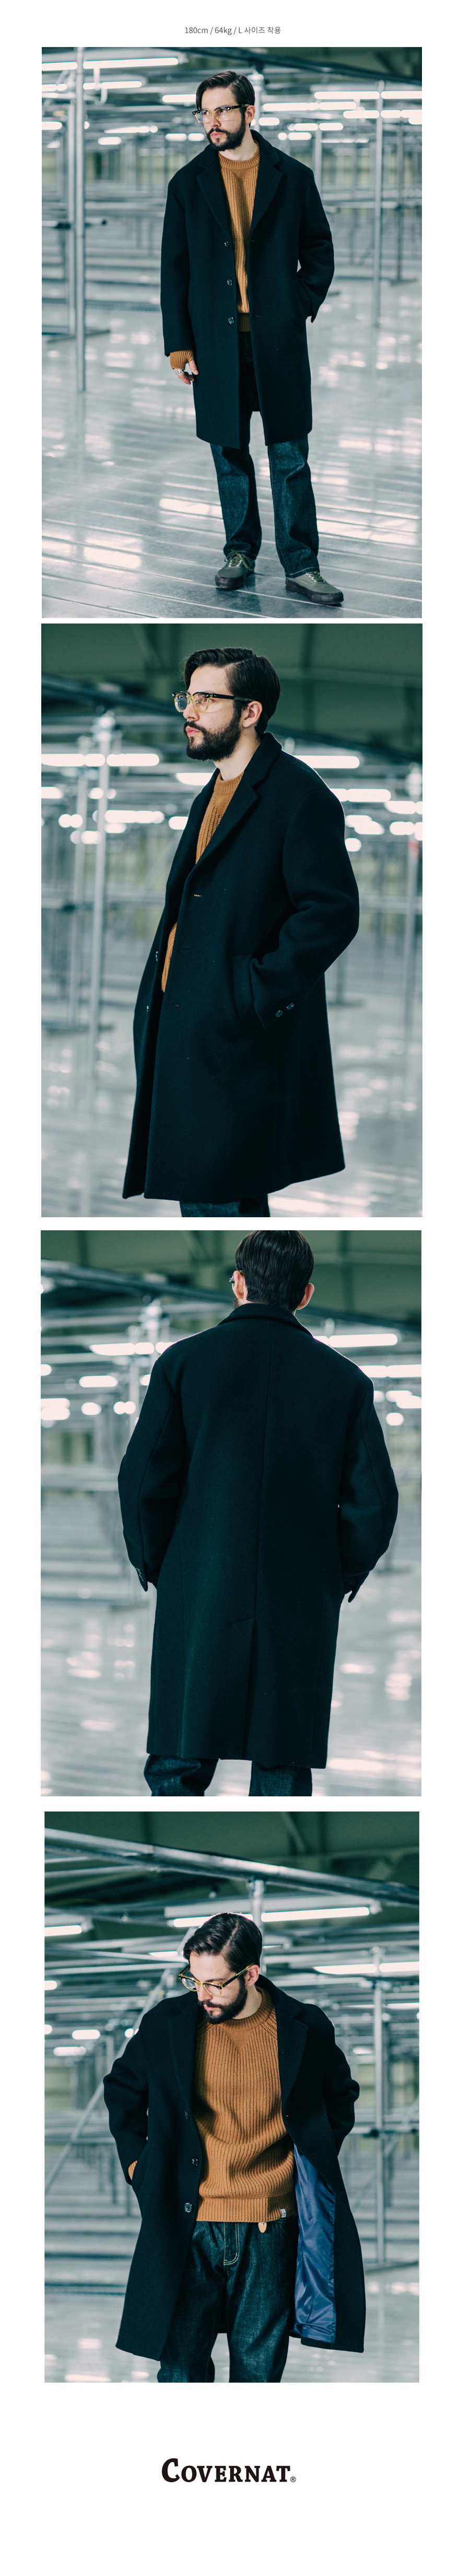 커버낫(COVERNAT) [남/녀] WOOL CASHMERE CHESTER COAT BLACK